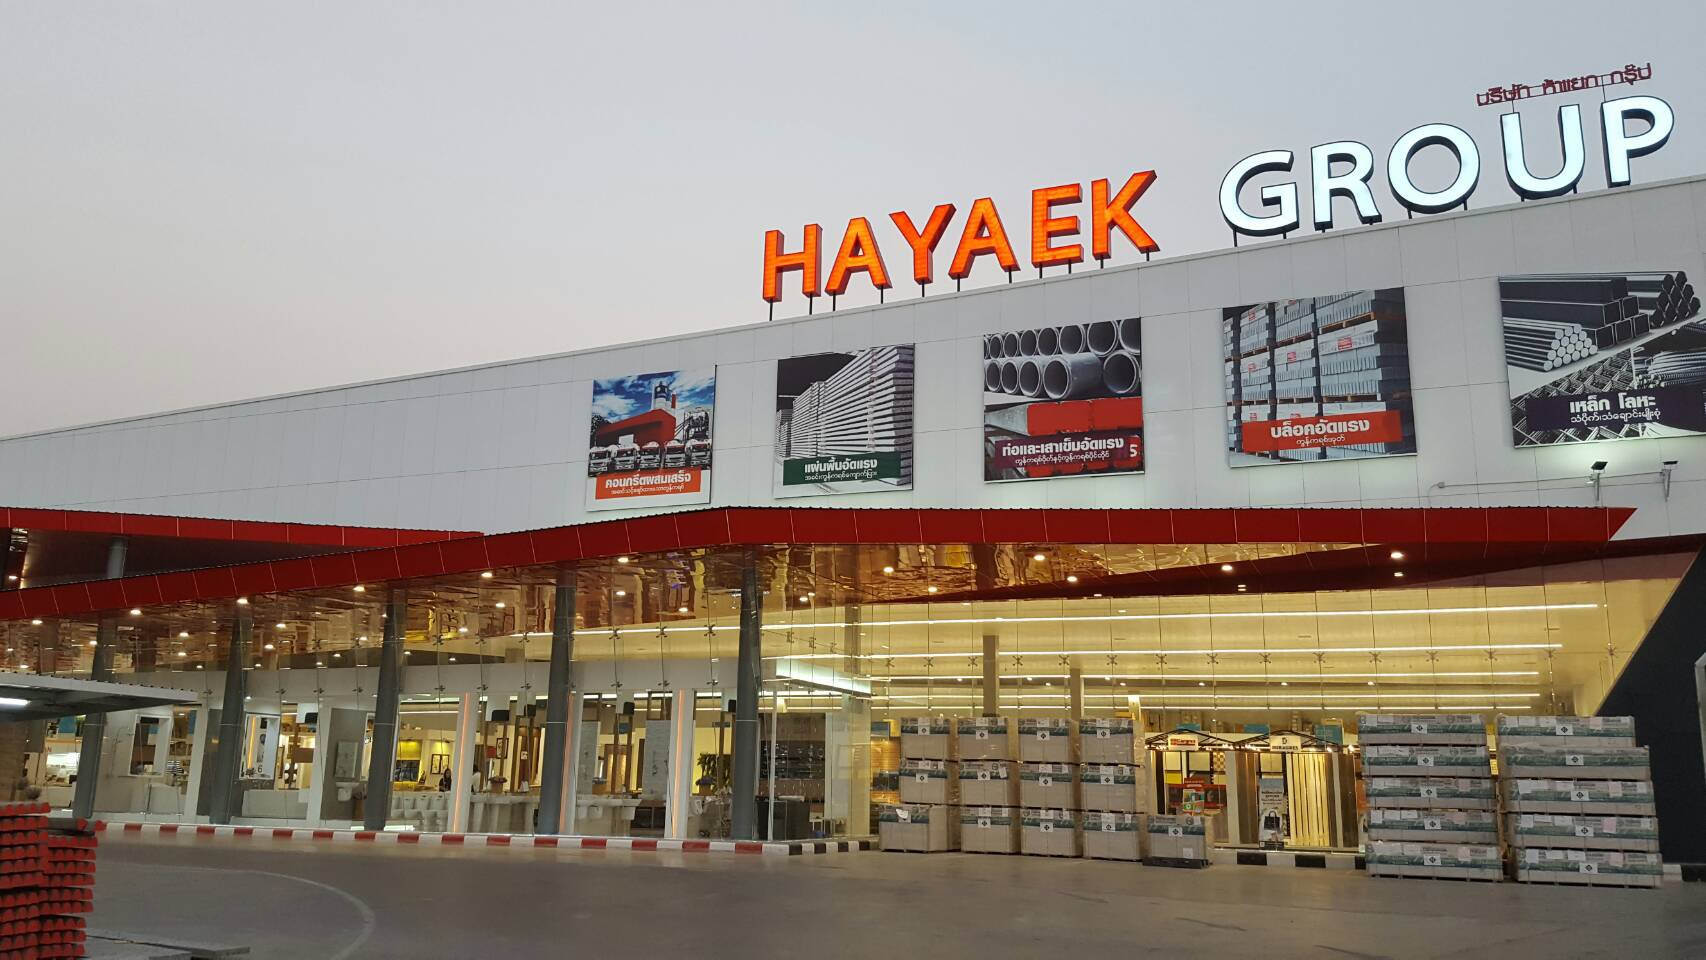 hayaek group maesod